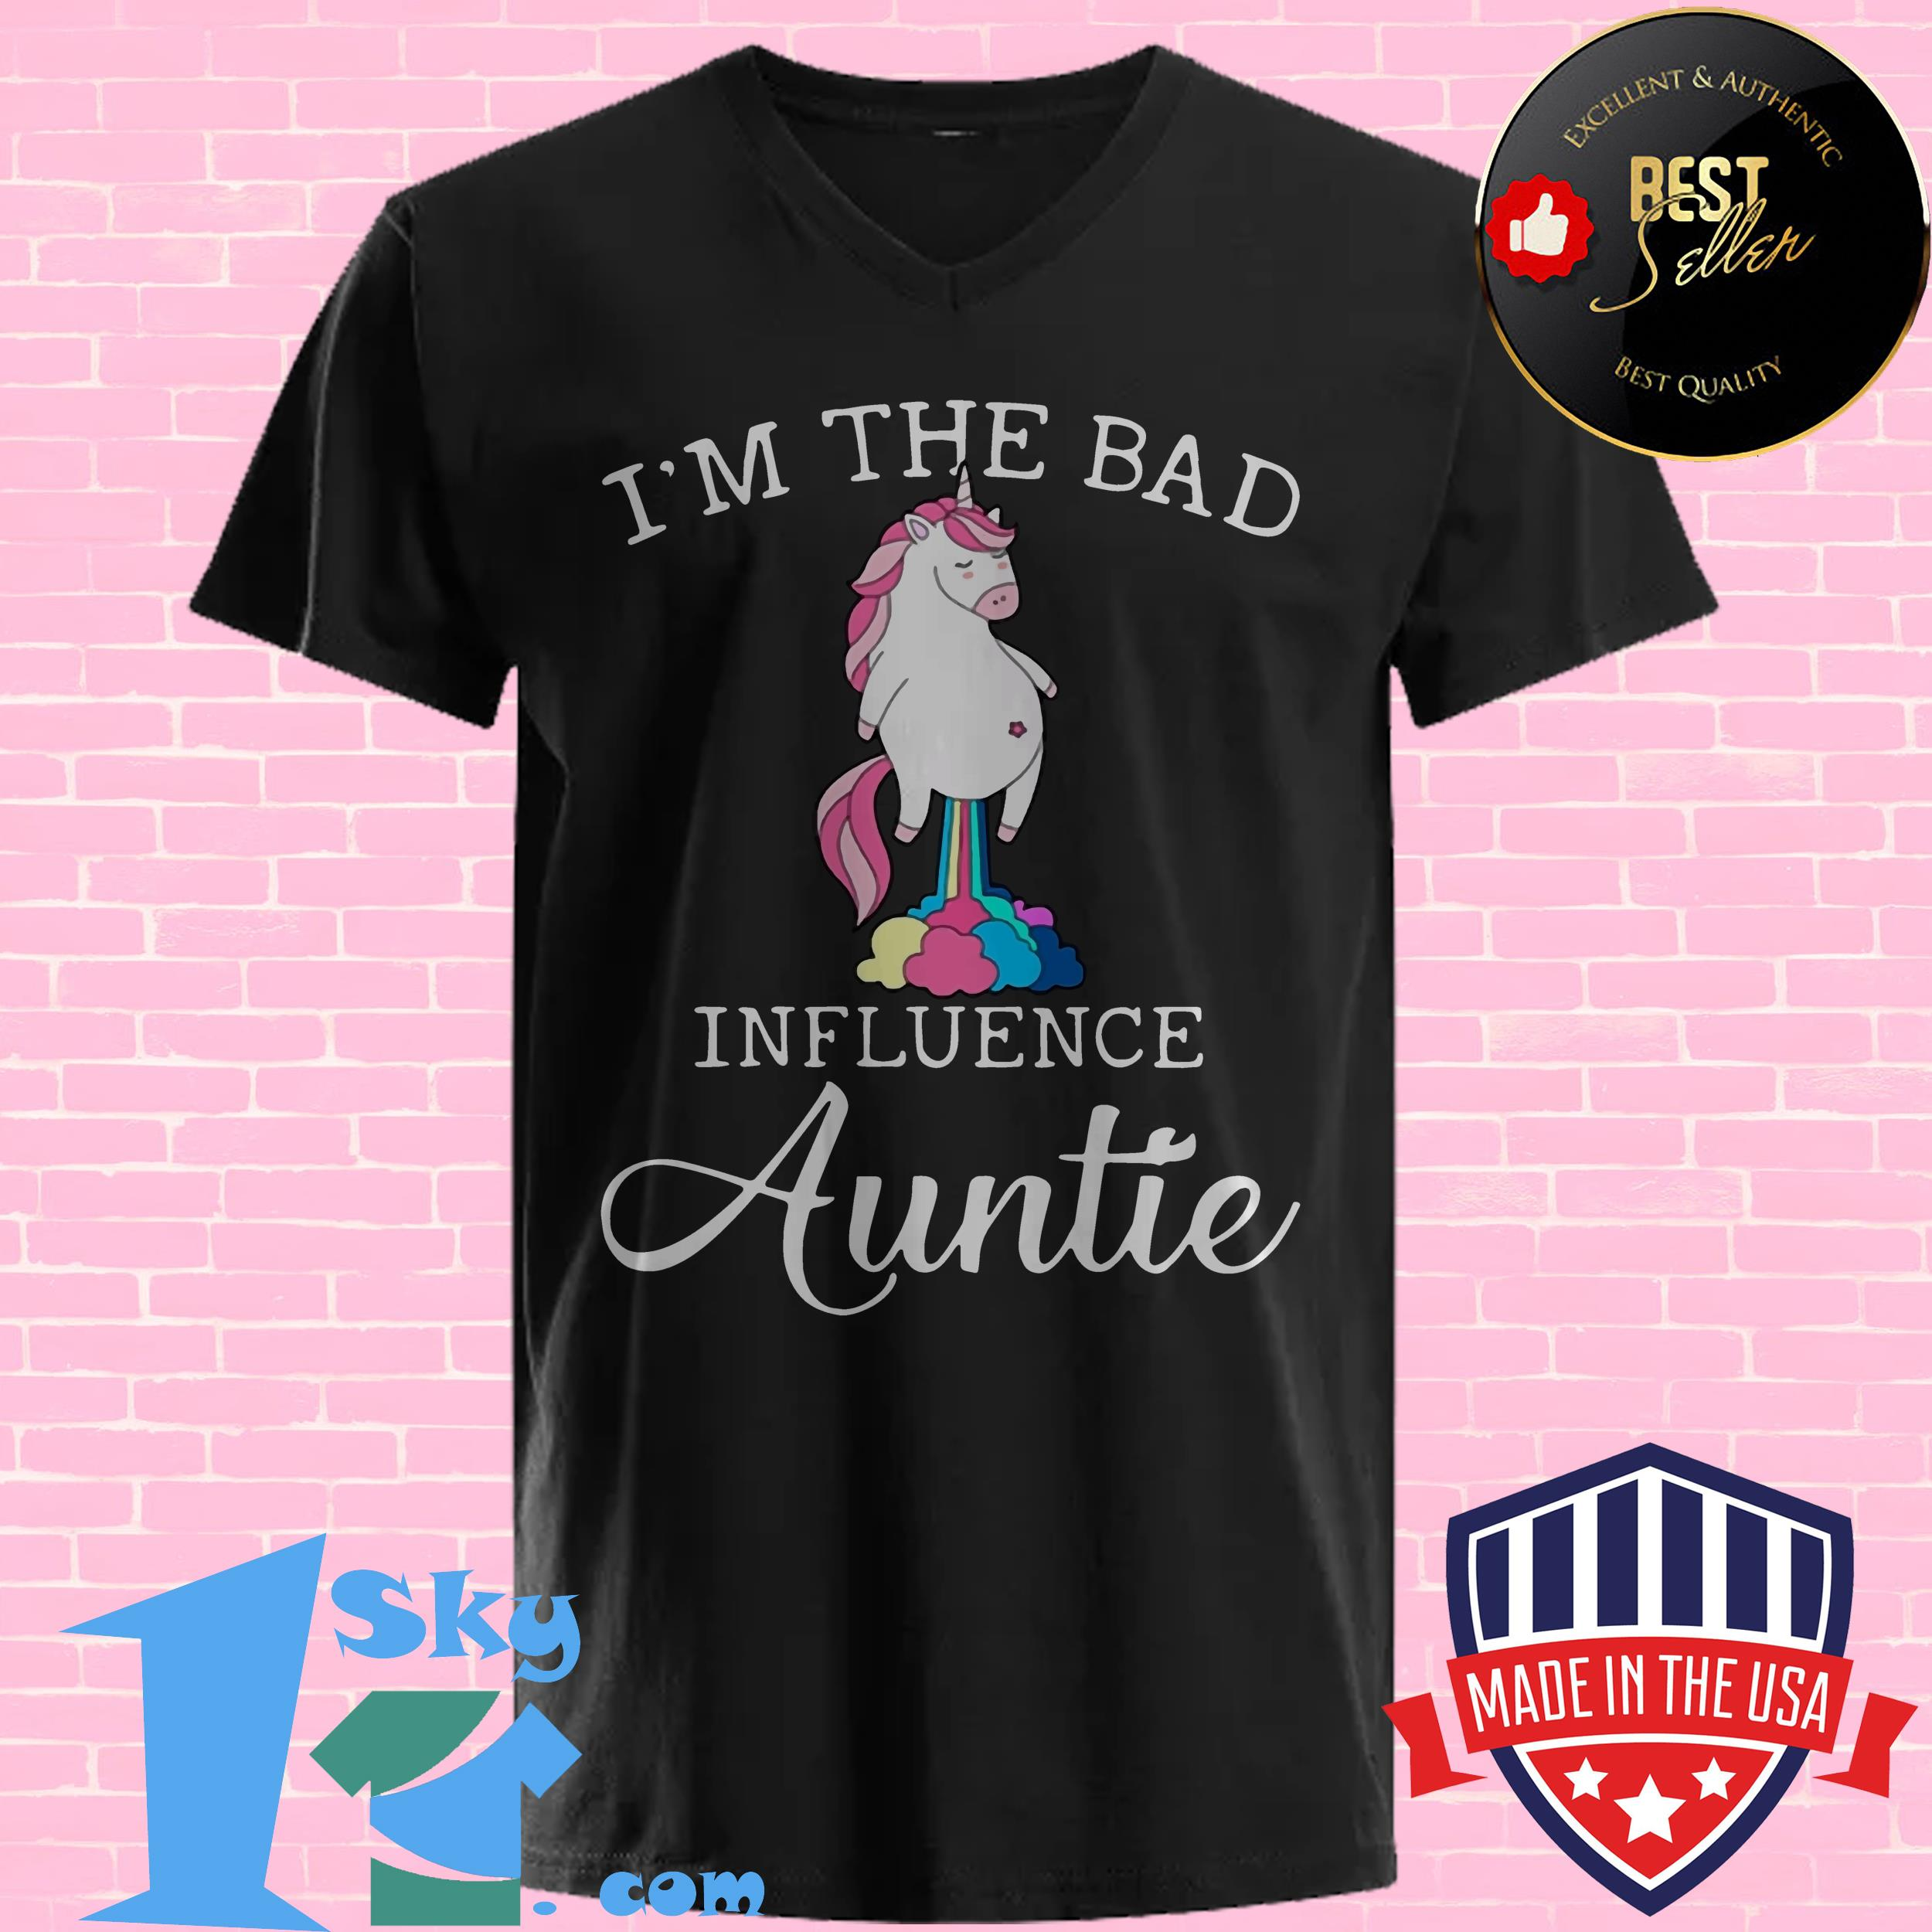 im the bad influence auntie fart unicorn v neck - I'm The Bad Influence Auntie Fart Unicorn shirt